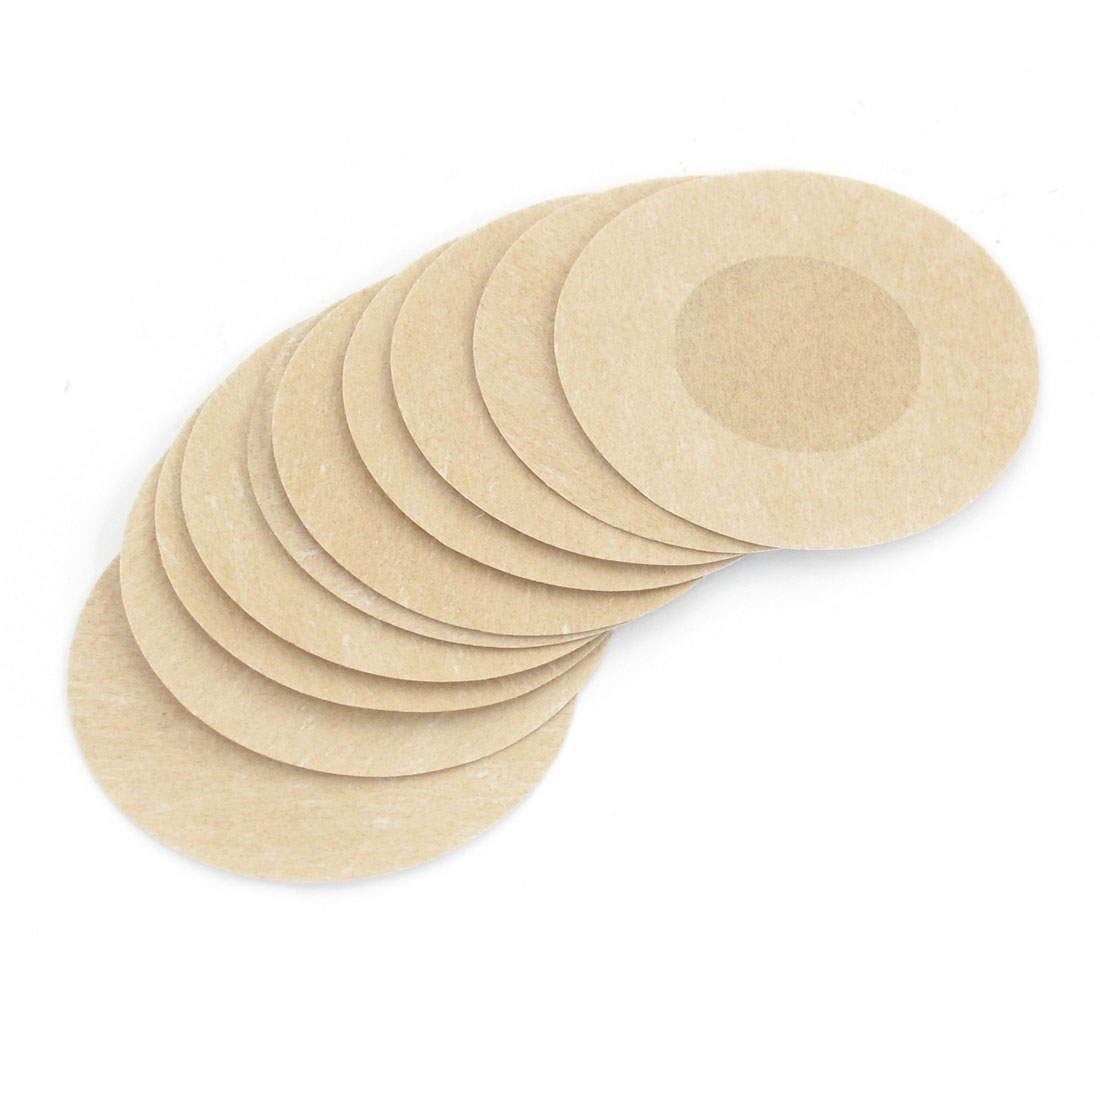 5 Pairs Beige Round Shaped Nipple Cover Pads for Lady